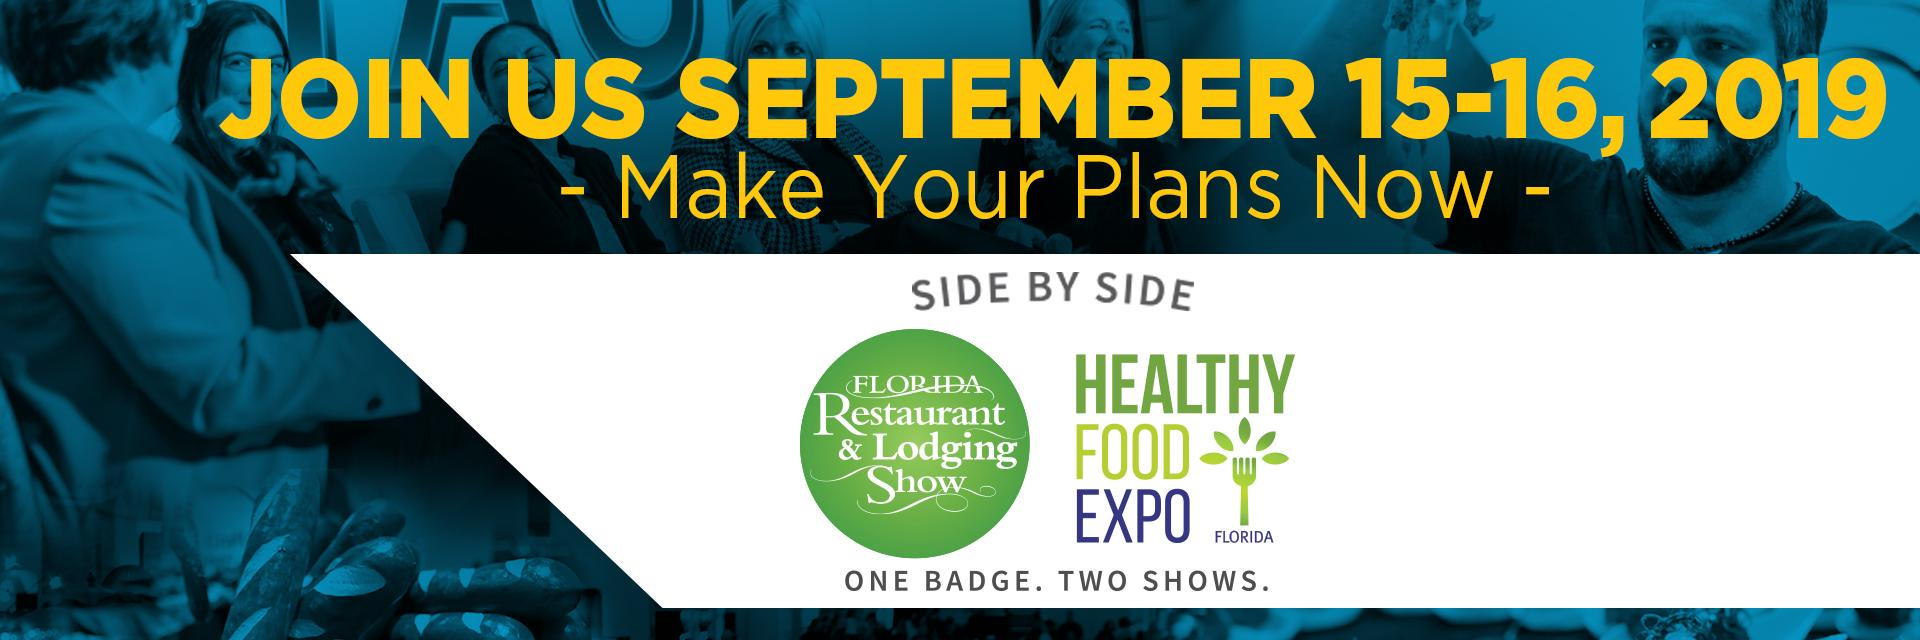 Home Page | Florida Restaurant & Lodging Show